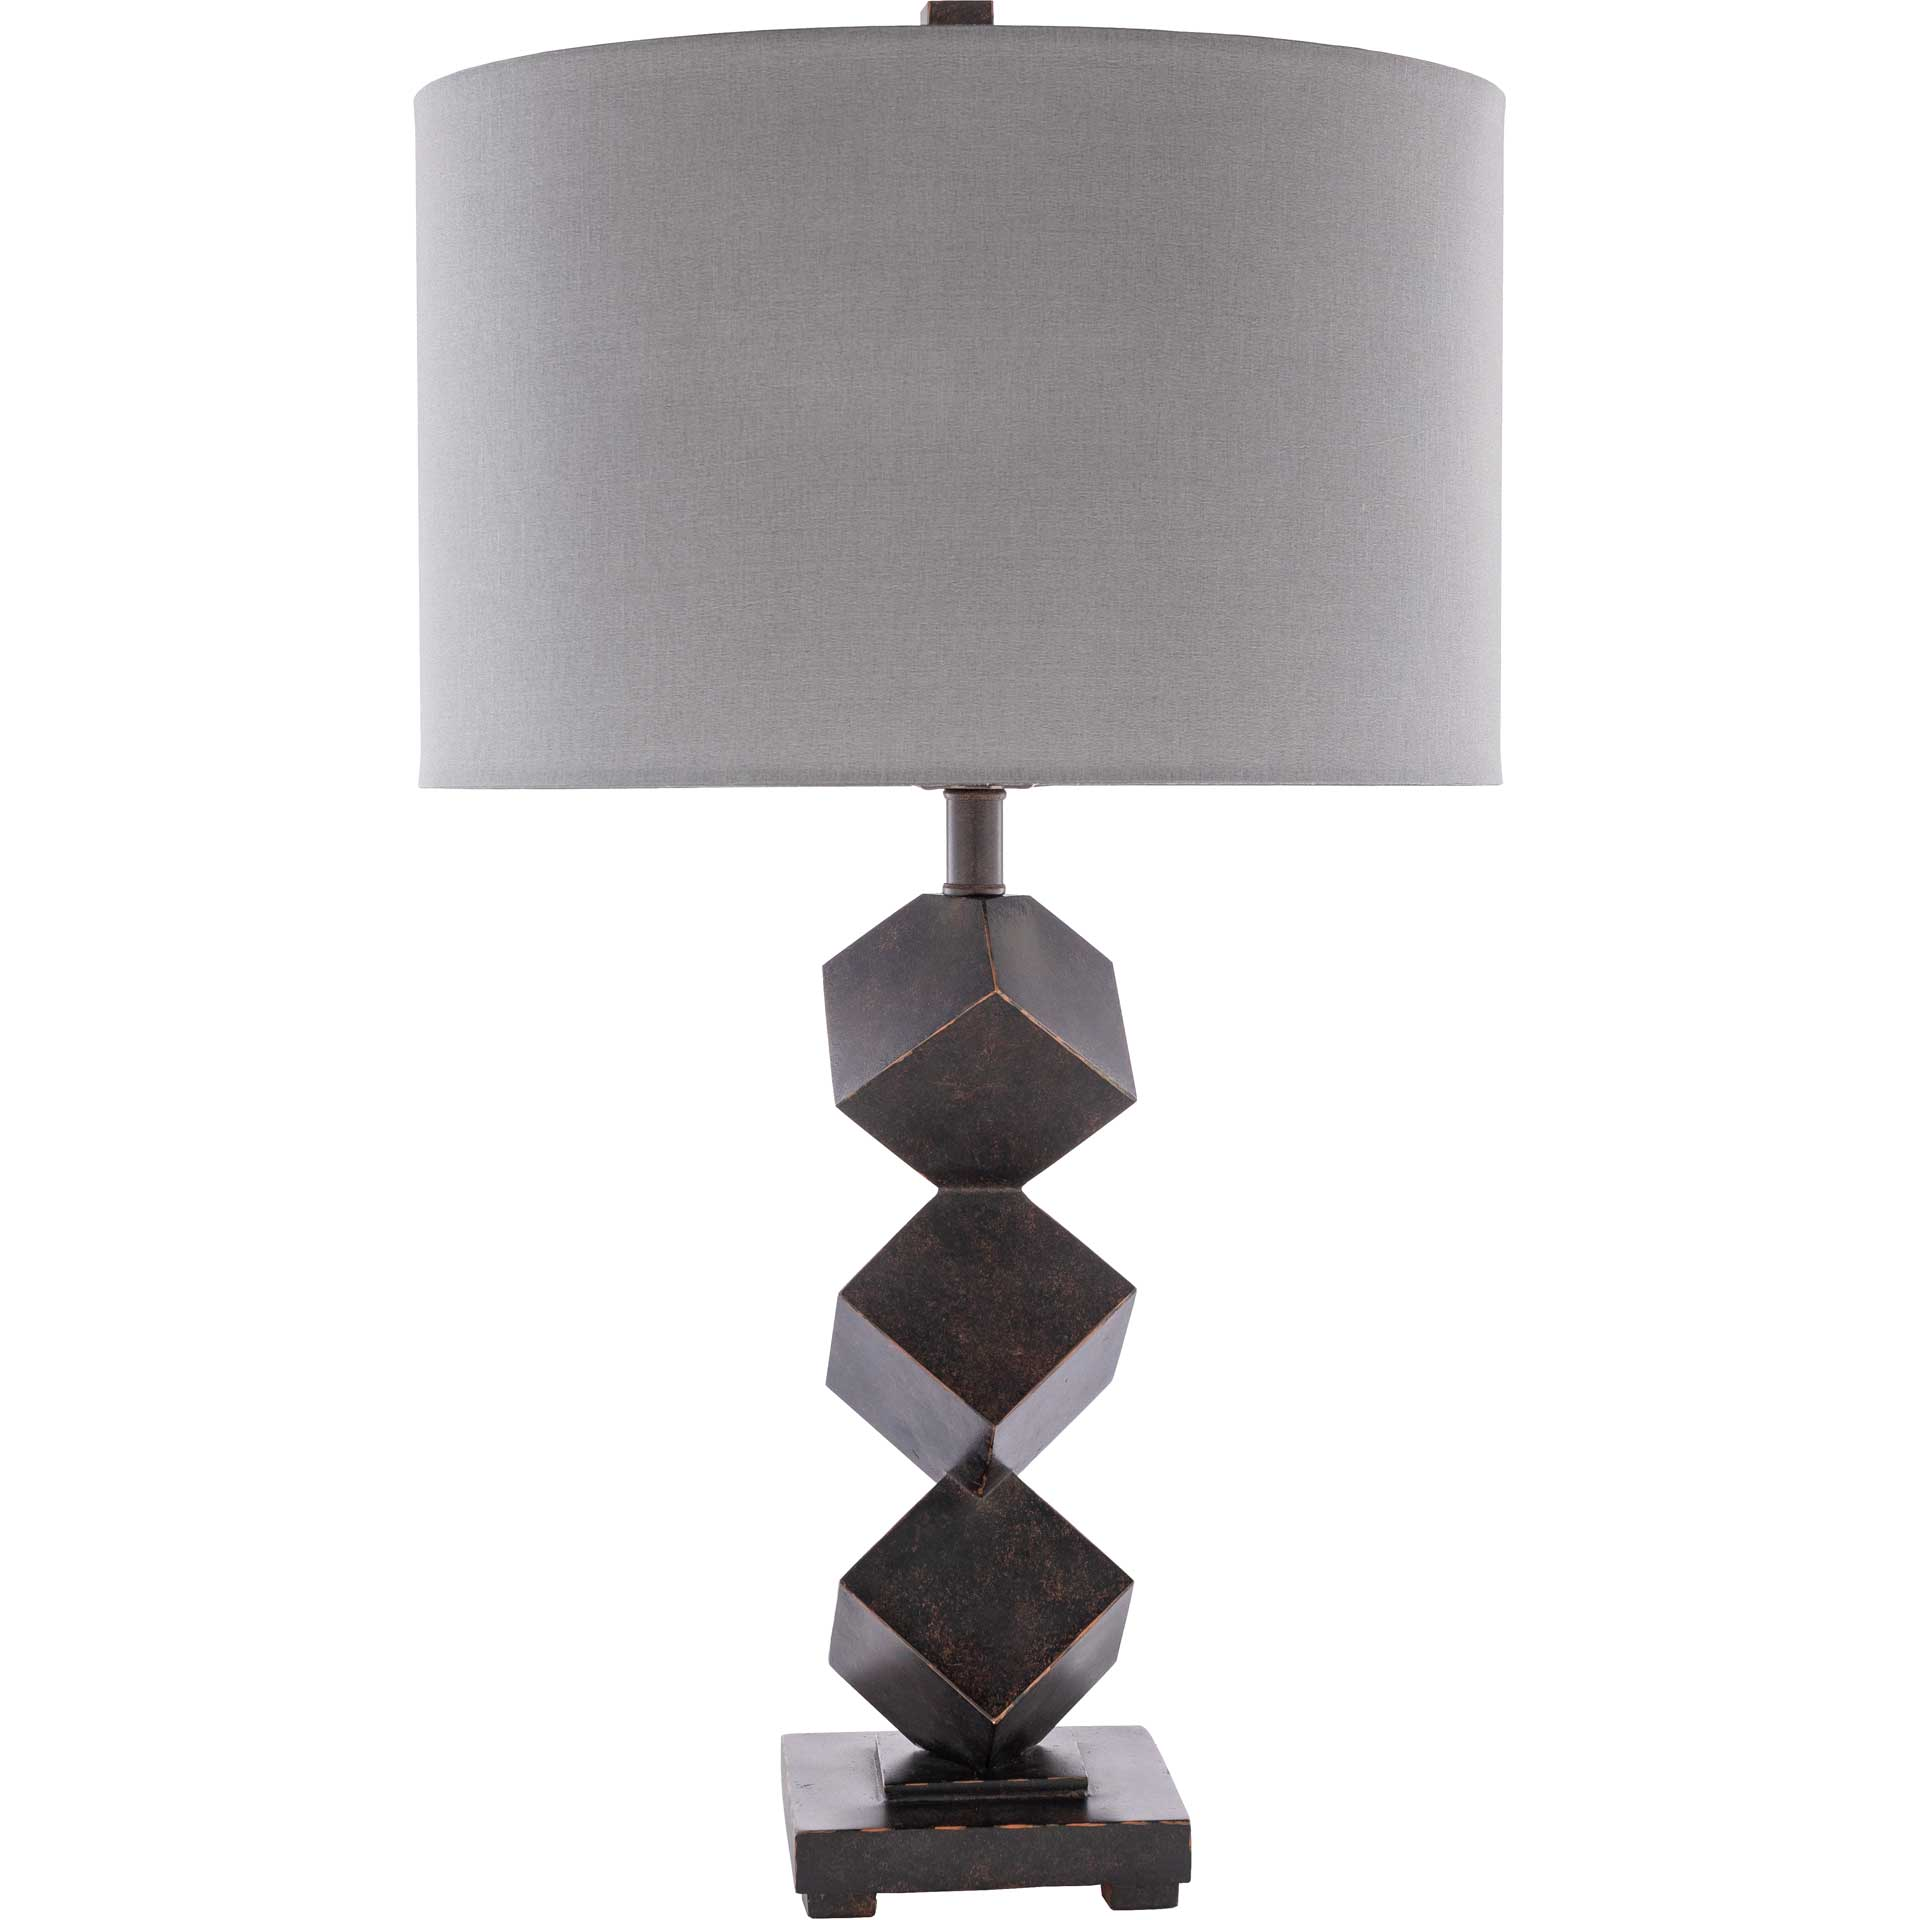 Baker Table Lamp Charcoal/Dark Brown/White